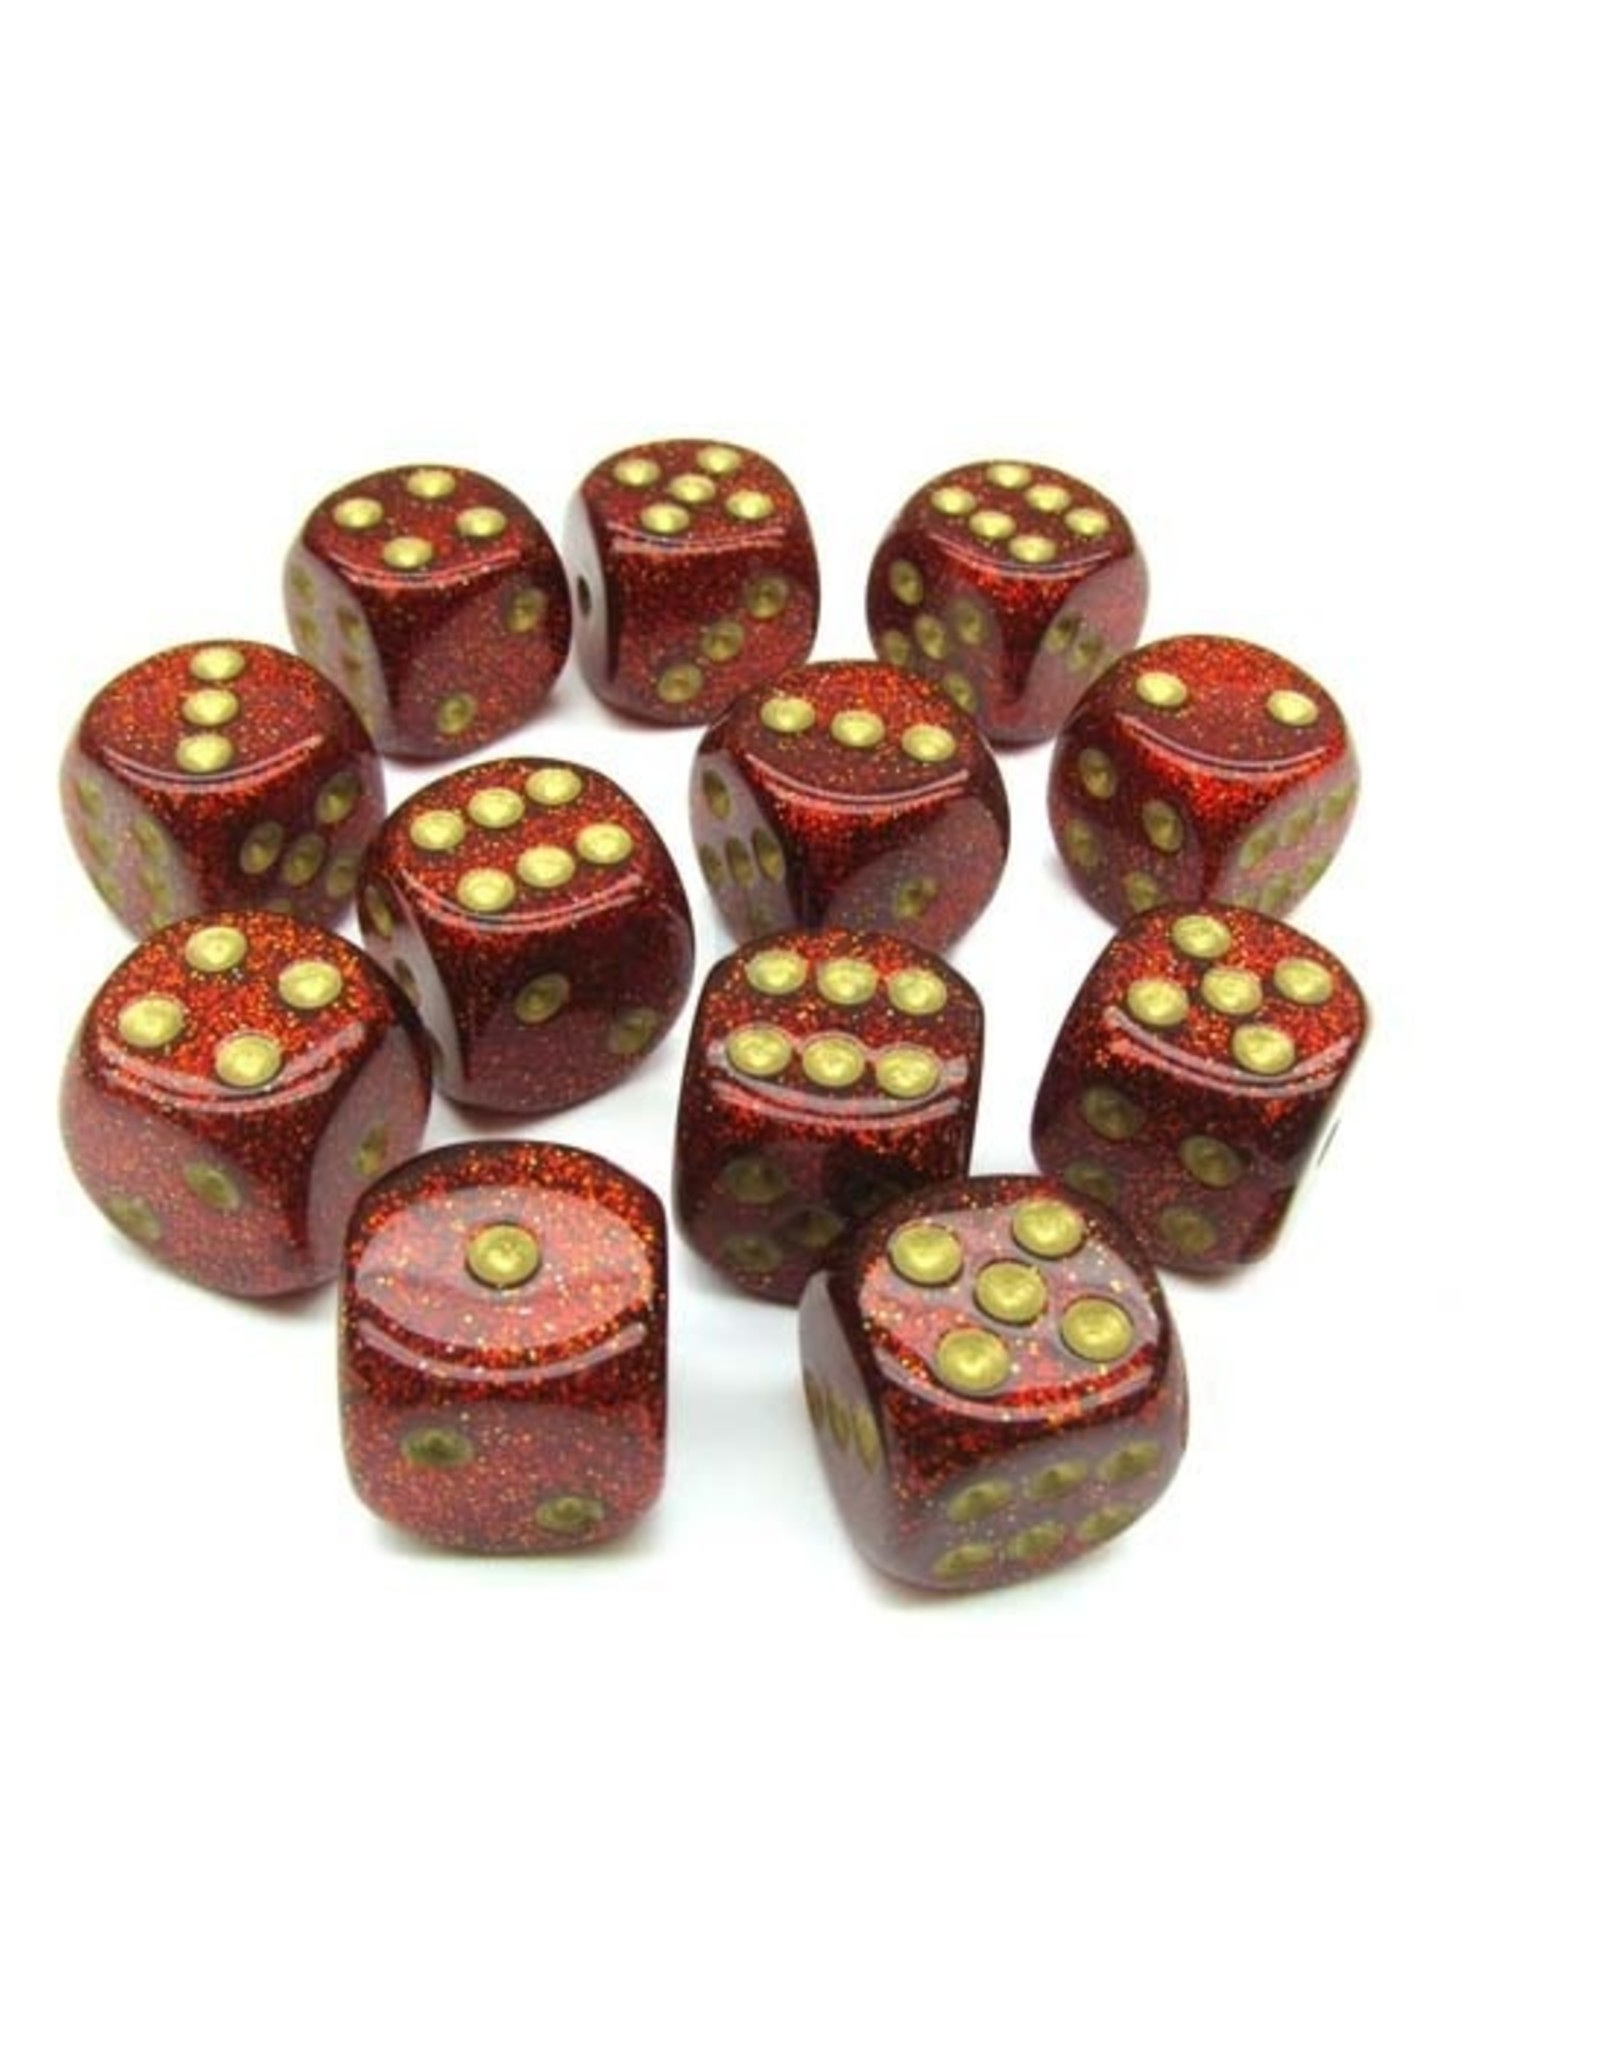 Chessex Chessex: 16mm D6 - Glitter - Ruby w/ Gold